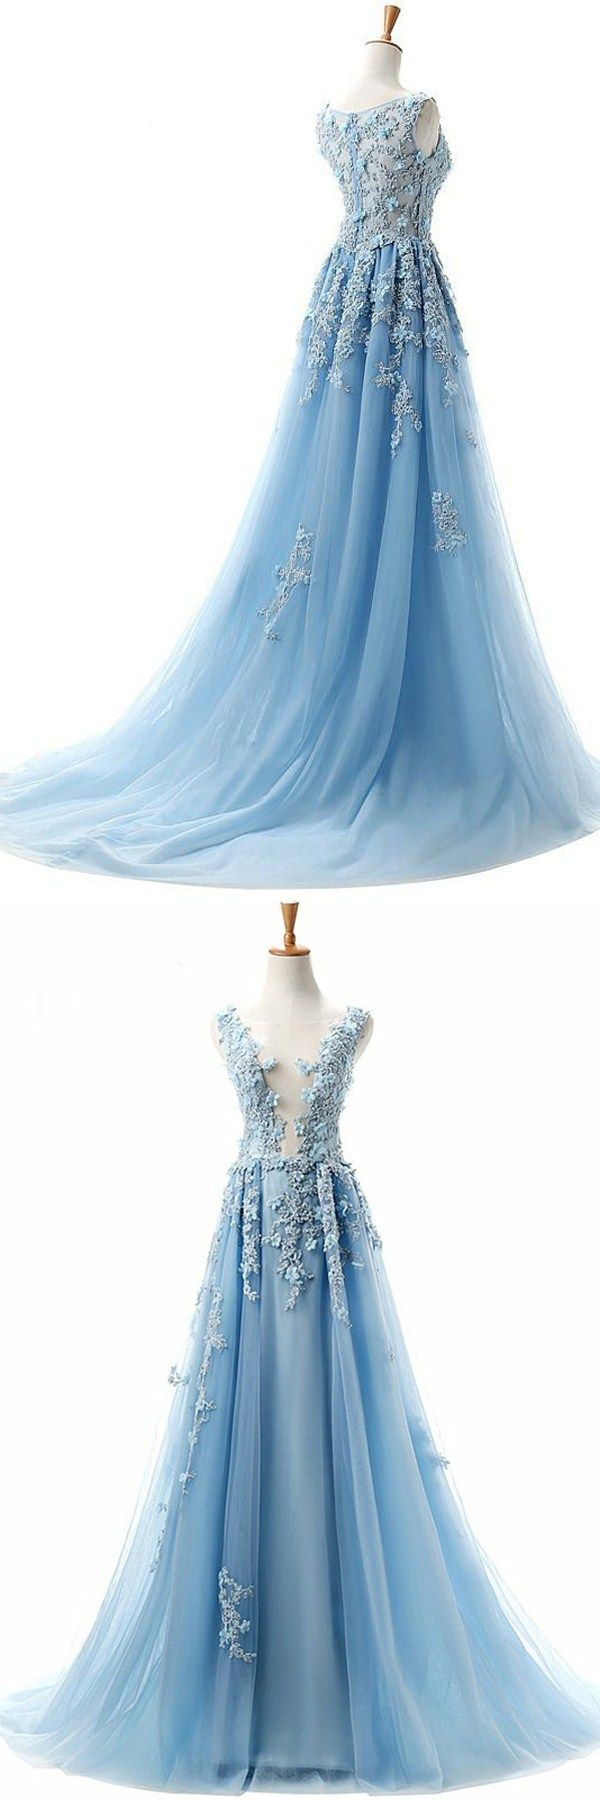 dreamy deep v-neck prom evening gowns, fashion blue formal party dresses.